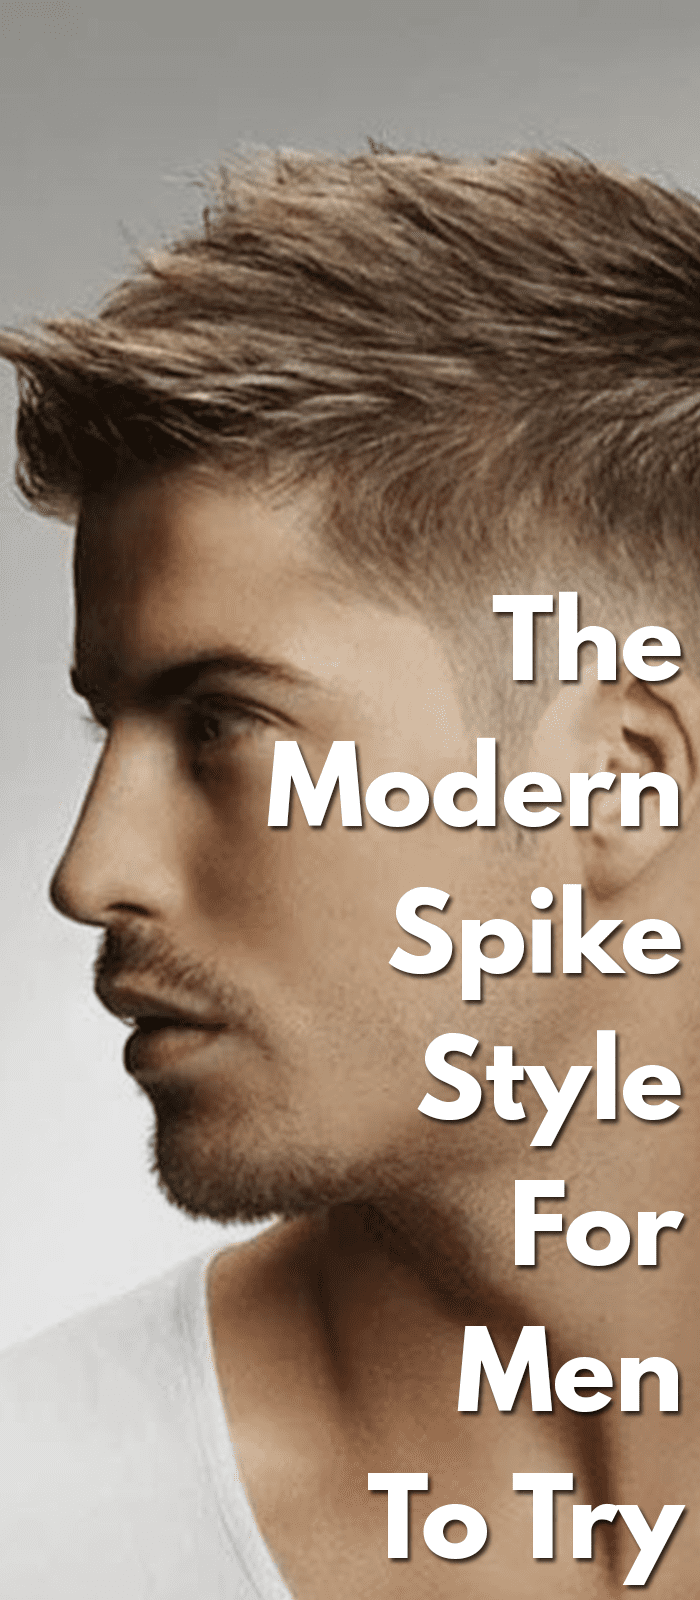 The-Modern-Spike-Style-For-Men-To-Try..